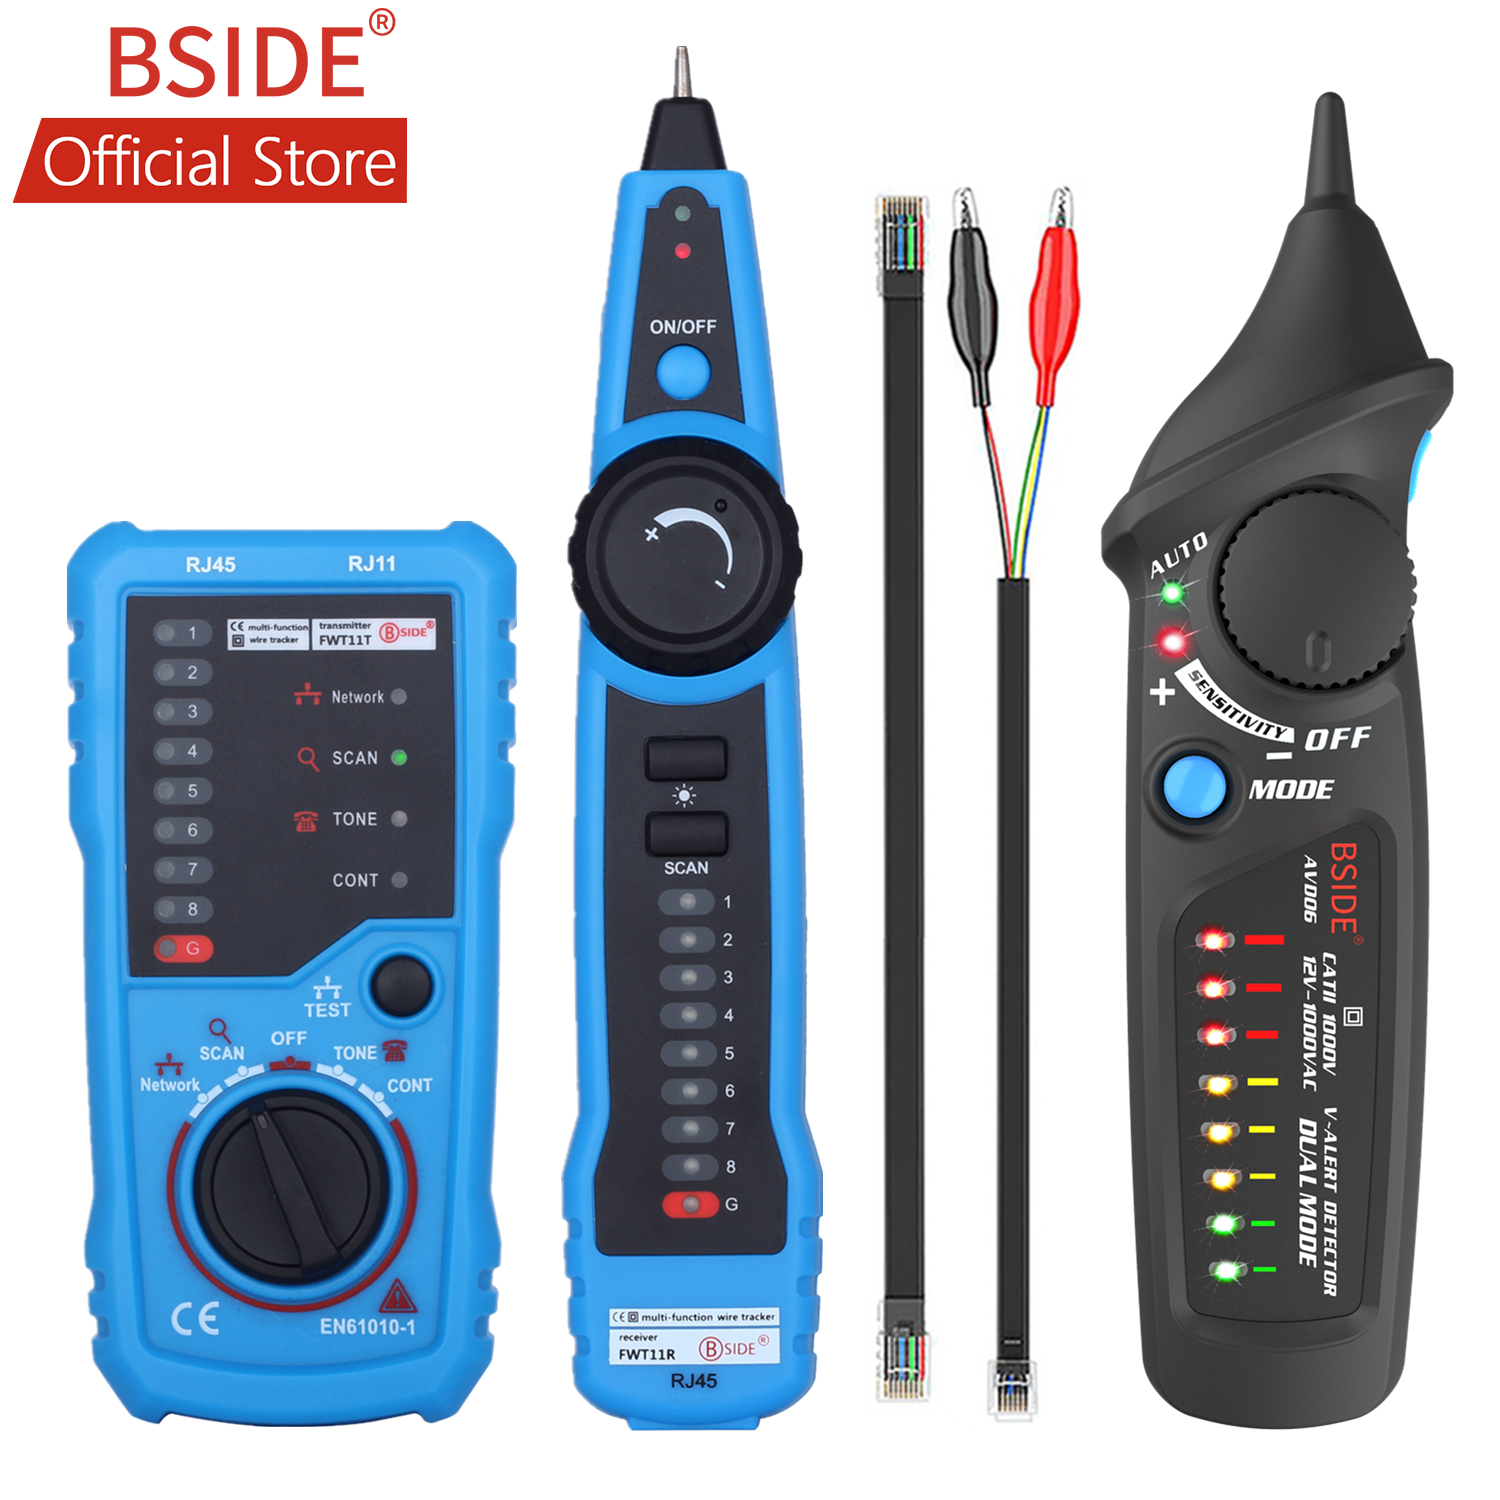 BSIDE FWT11 High Quality RJ11 RJ45 Cat5 Cat6 Telephone Wire Tracker Tracer Toner Ethernet LAN Network Cable Tester Line Finder